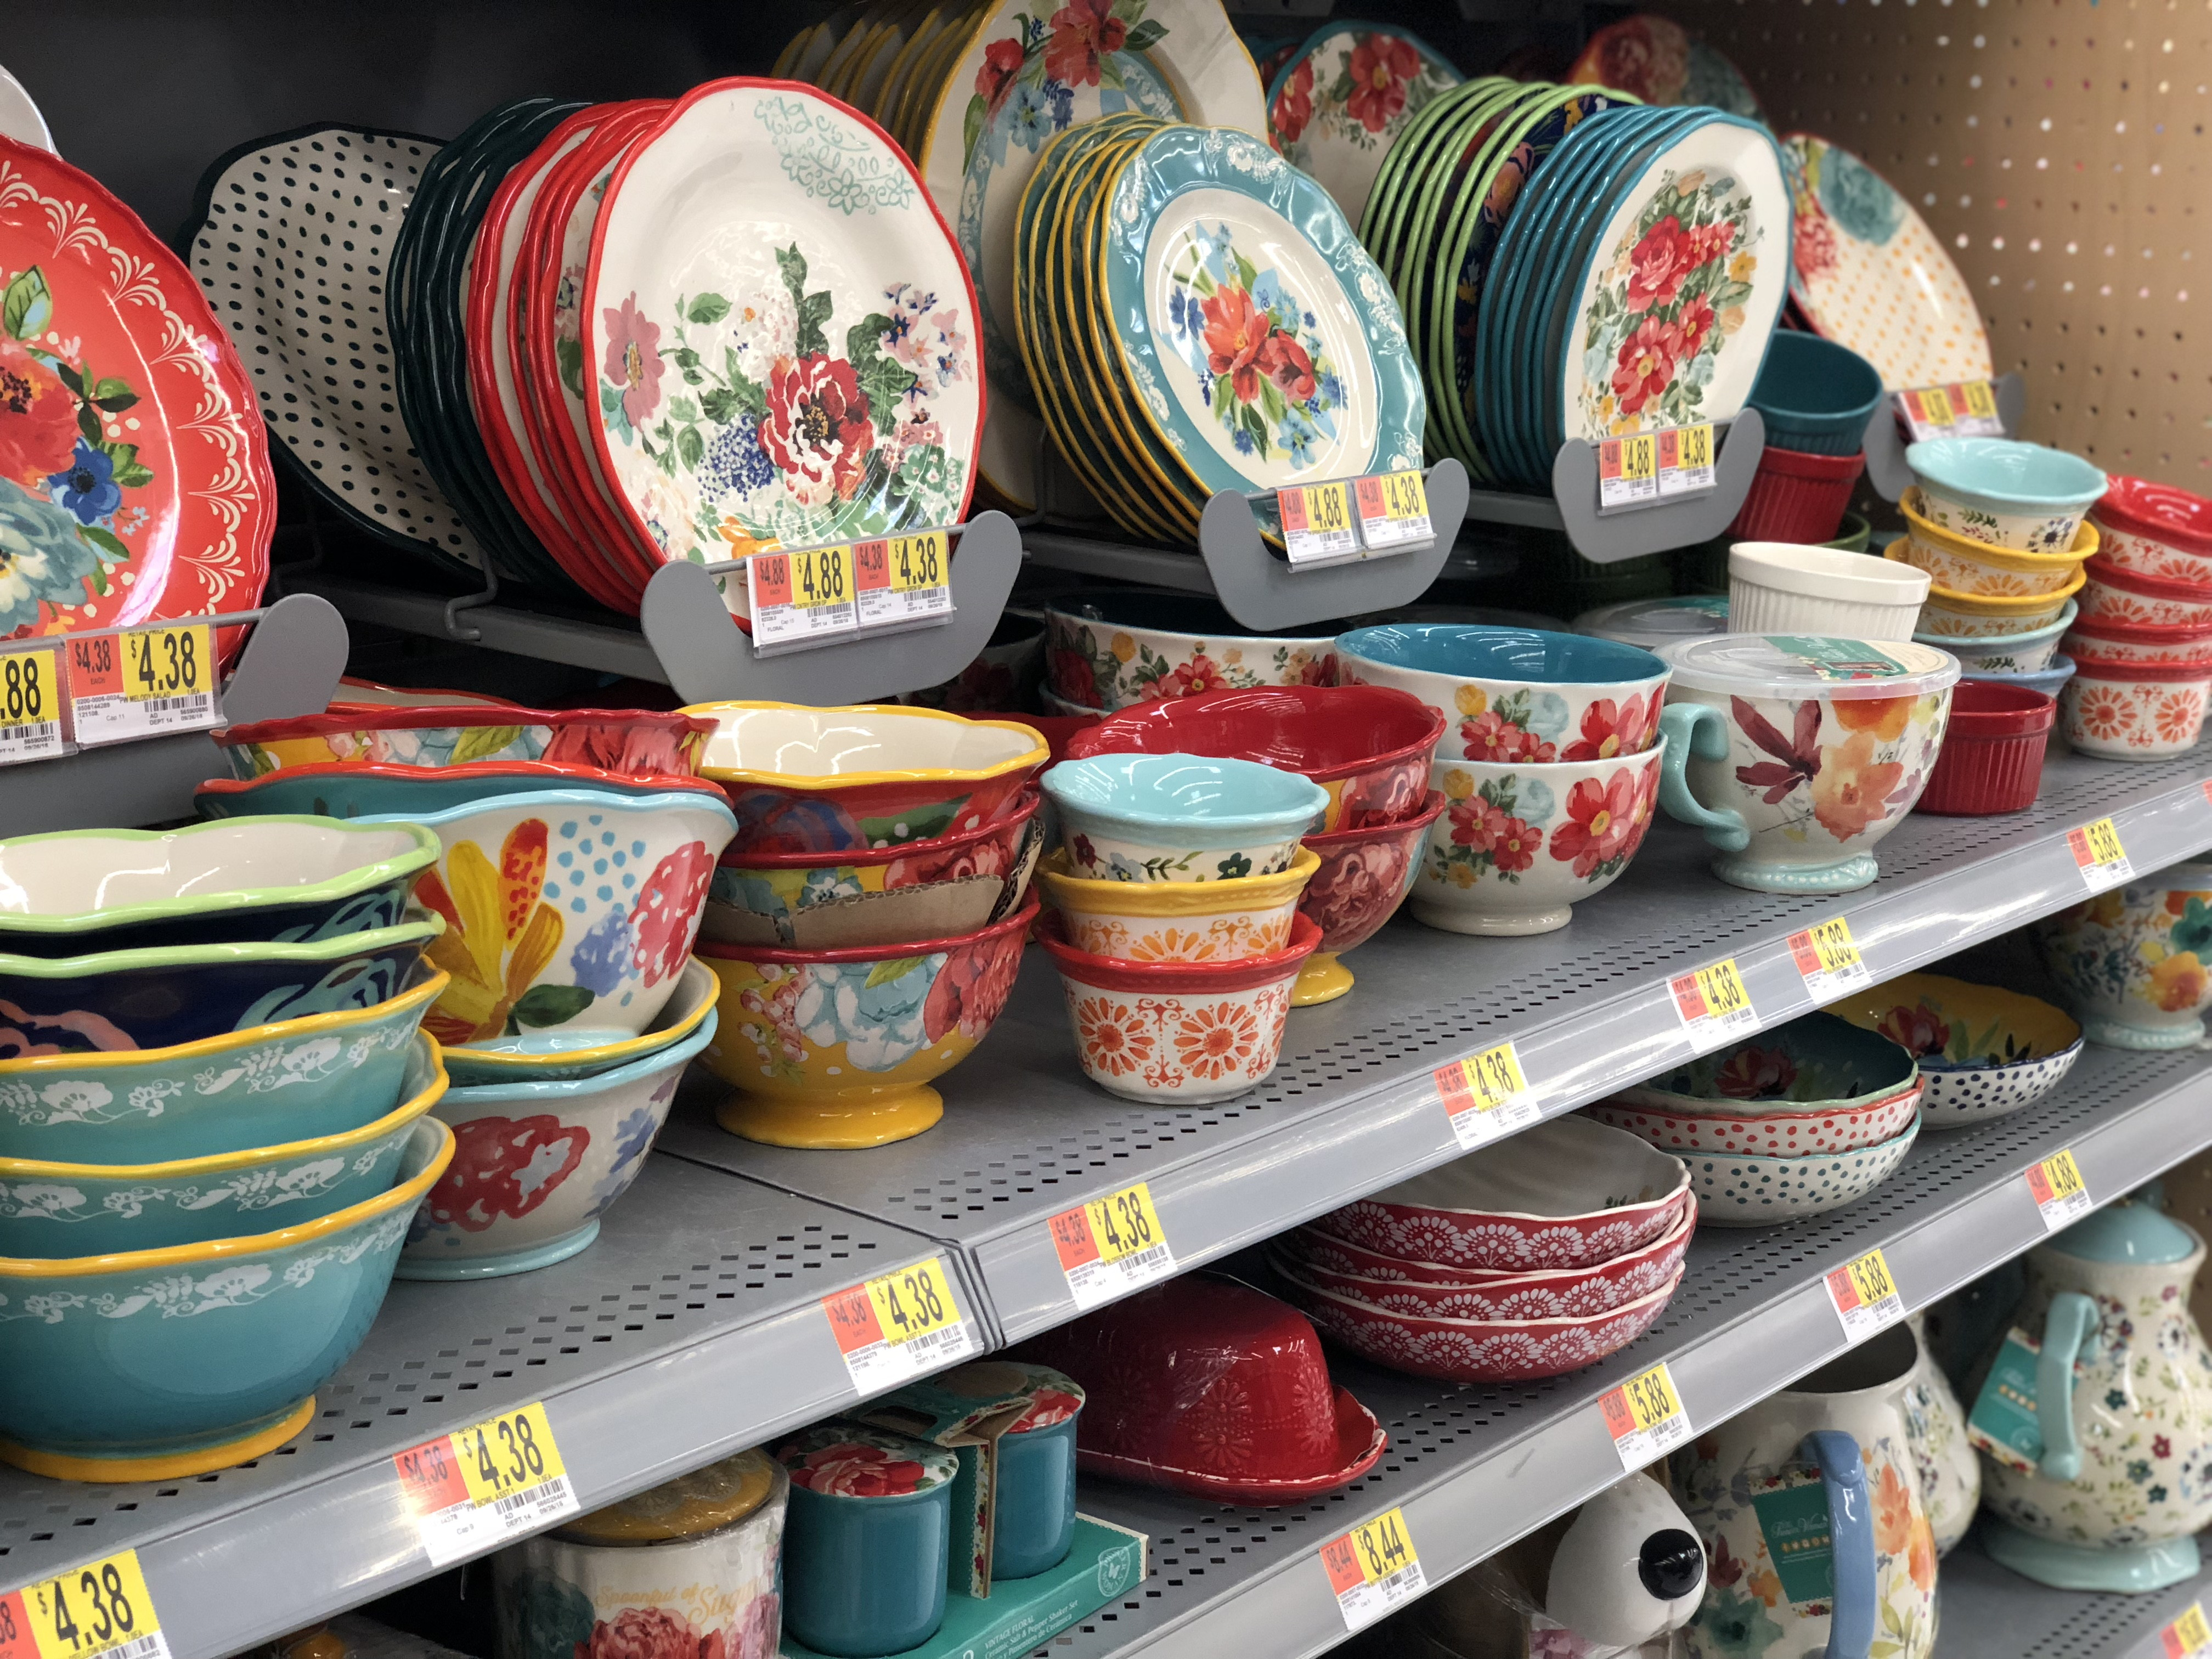 12 Ways To Never Pay Full Price For The Pioneer Woman Stuff